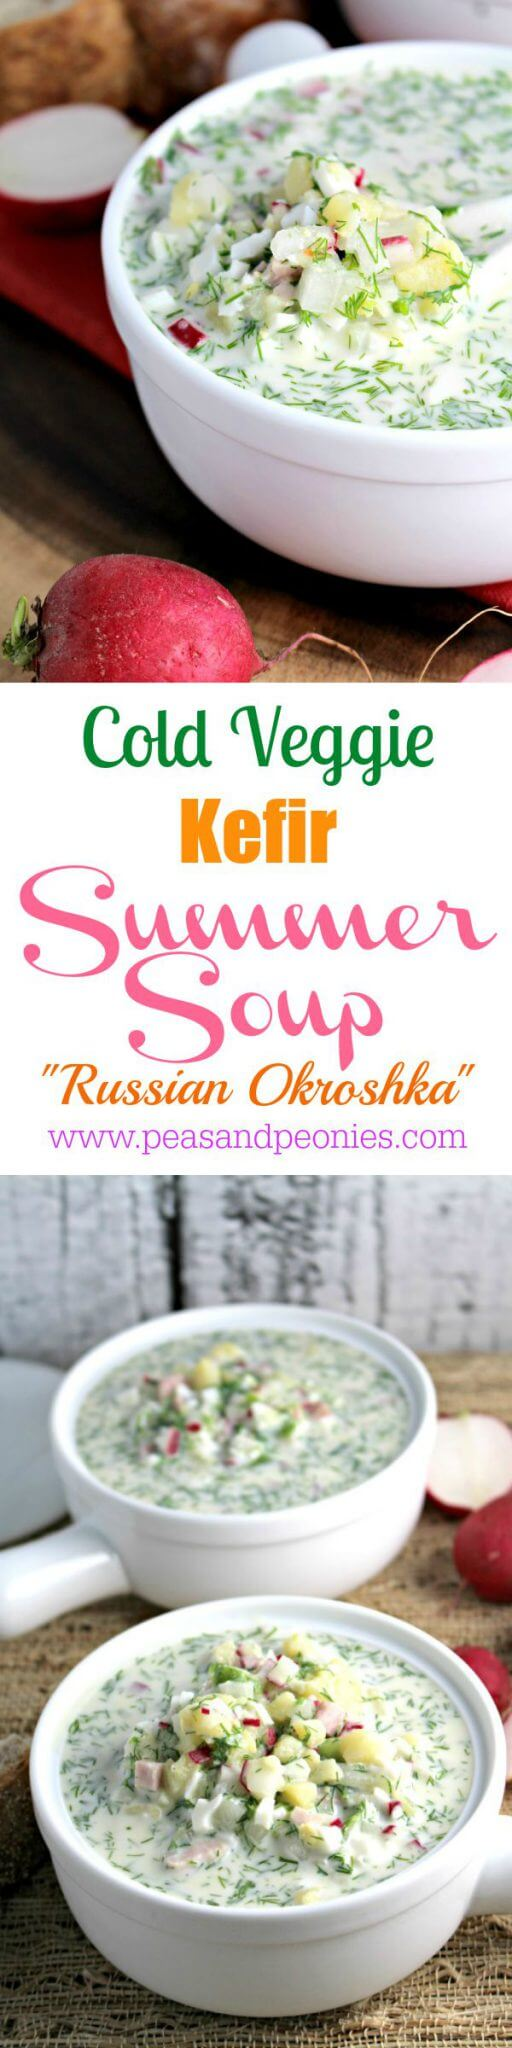 Cold Summer Soup Russian Okroshka